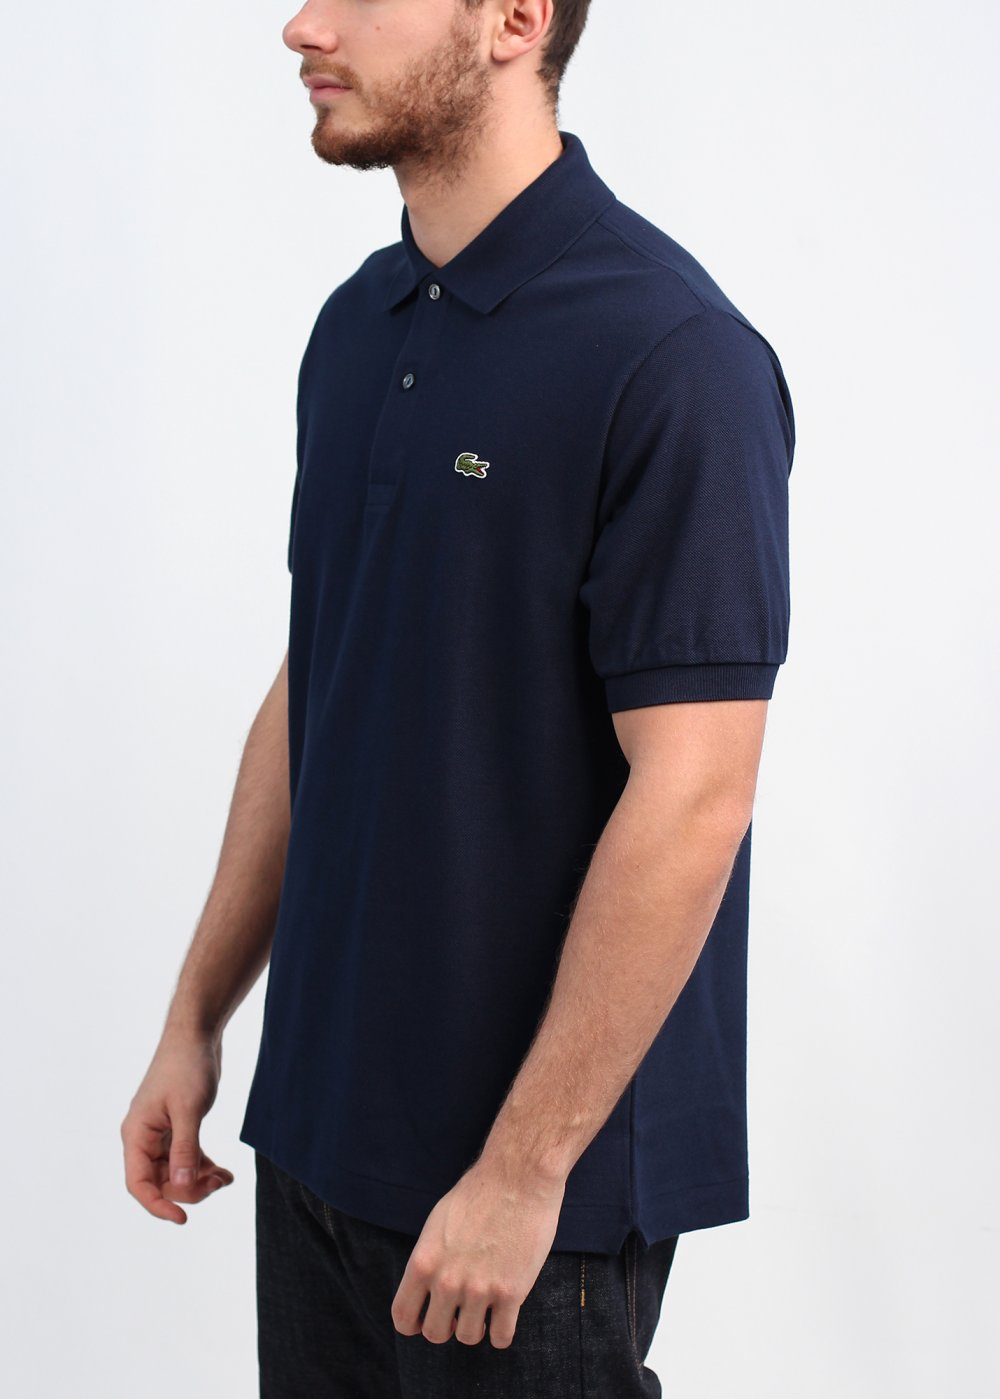 Lacoste best polo shirt navy for Best polo shirt for men